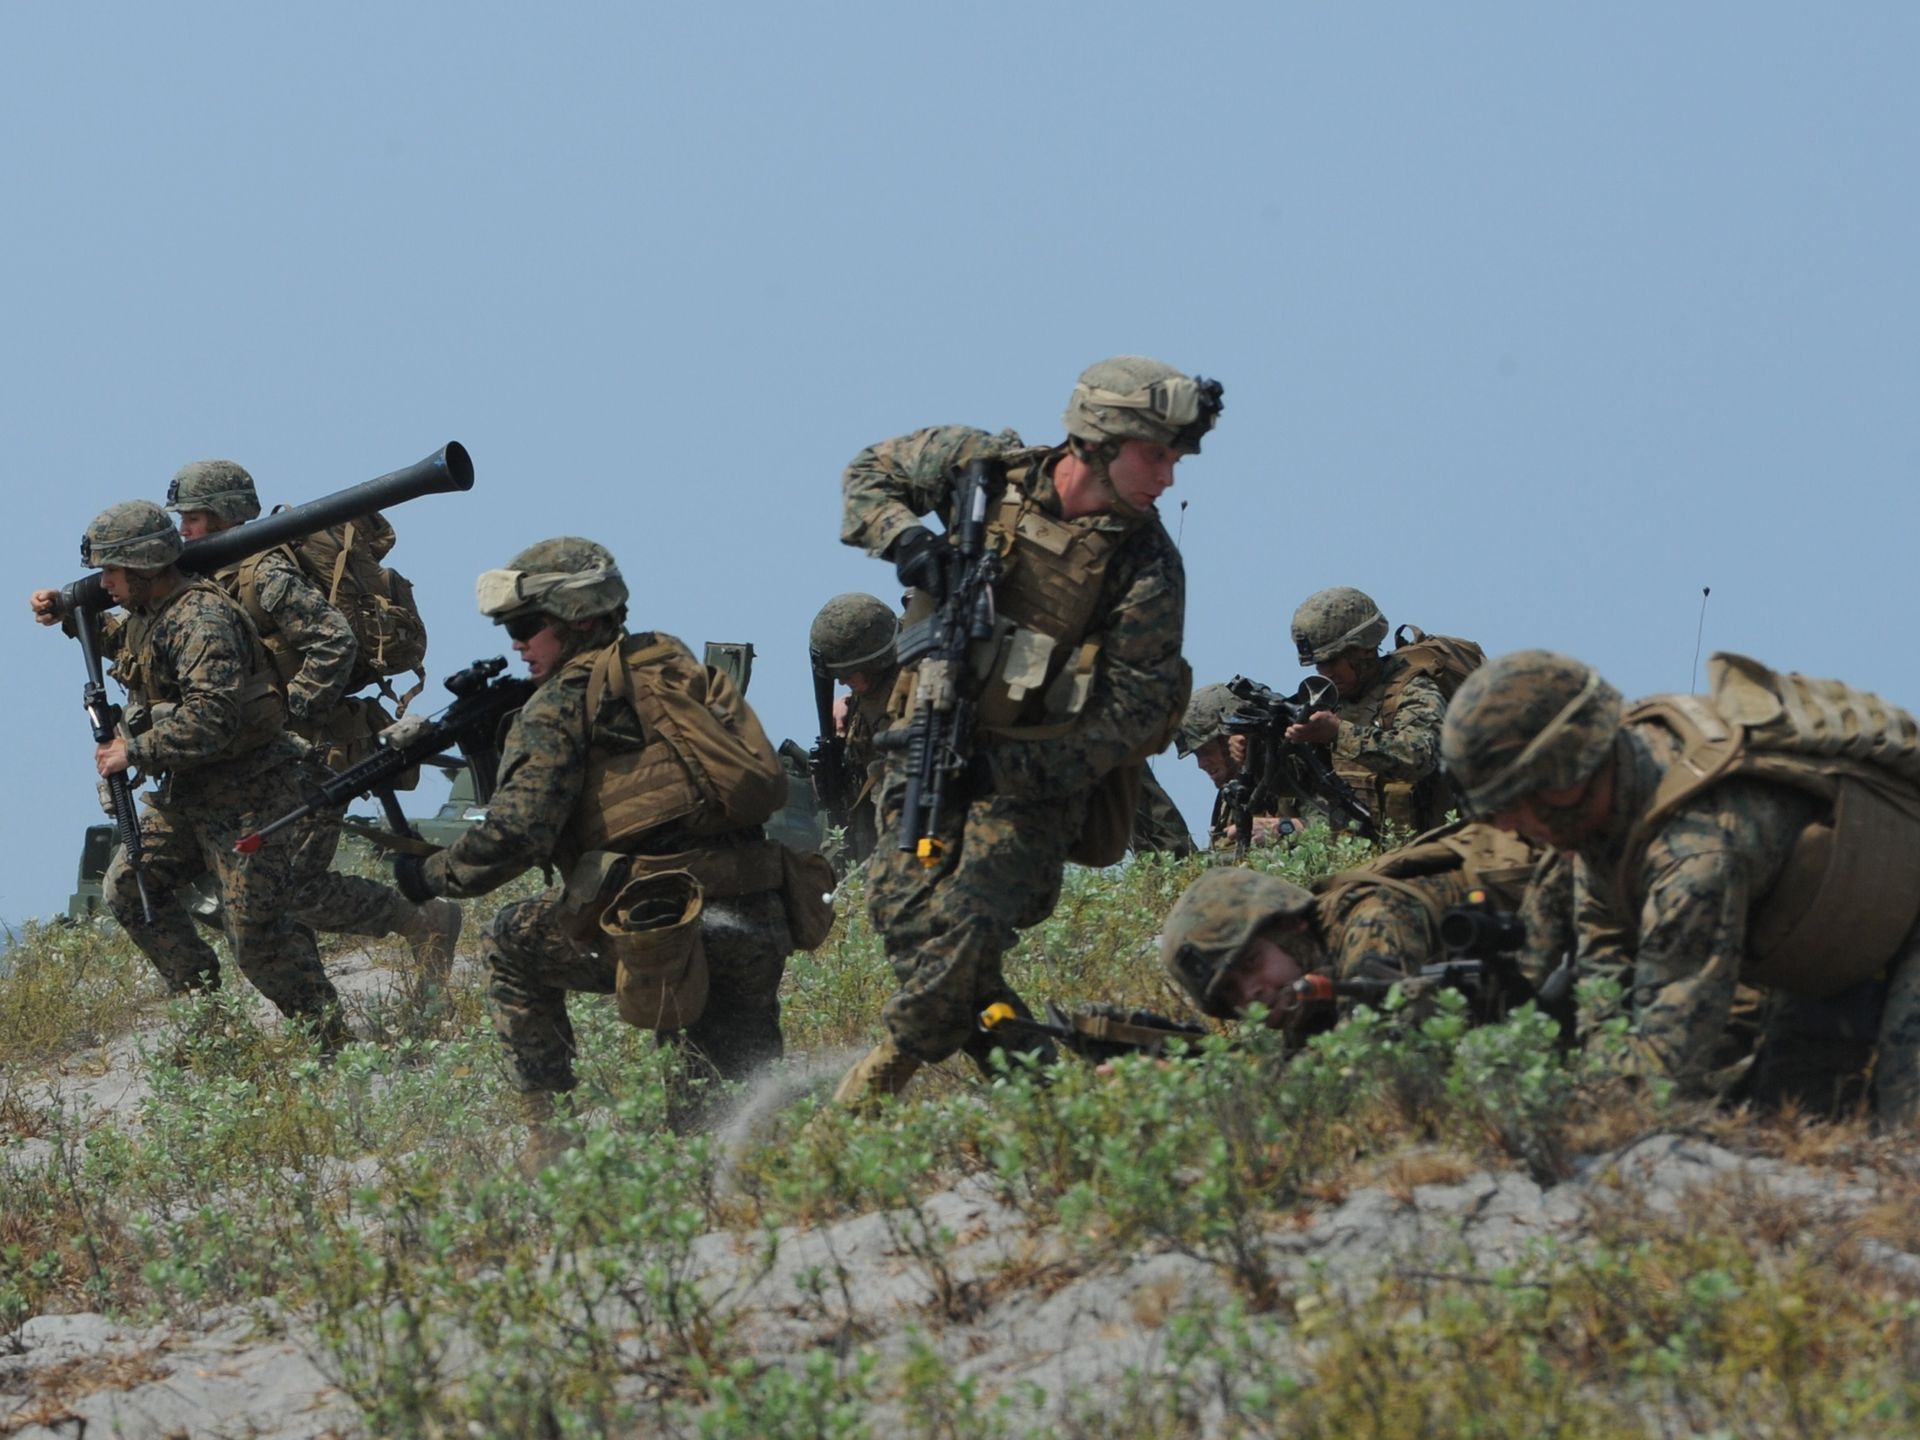 Marines run to their positions during an amphibious landing exercise on a beach at San Antonio in Zambales, Philippines, on April 21, 2015, as part of the annual Philippine-U.S. joint training.